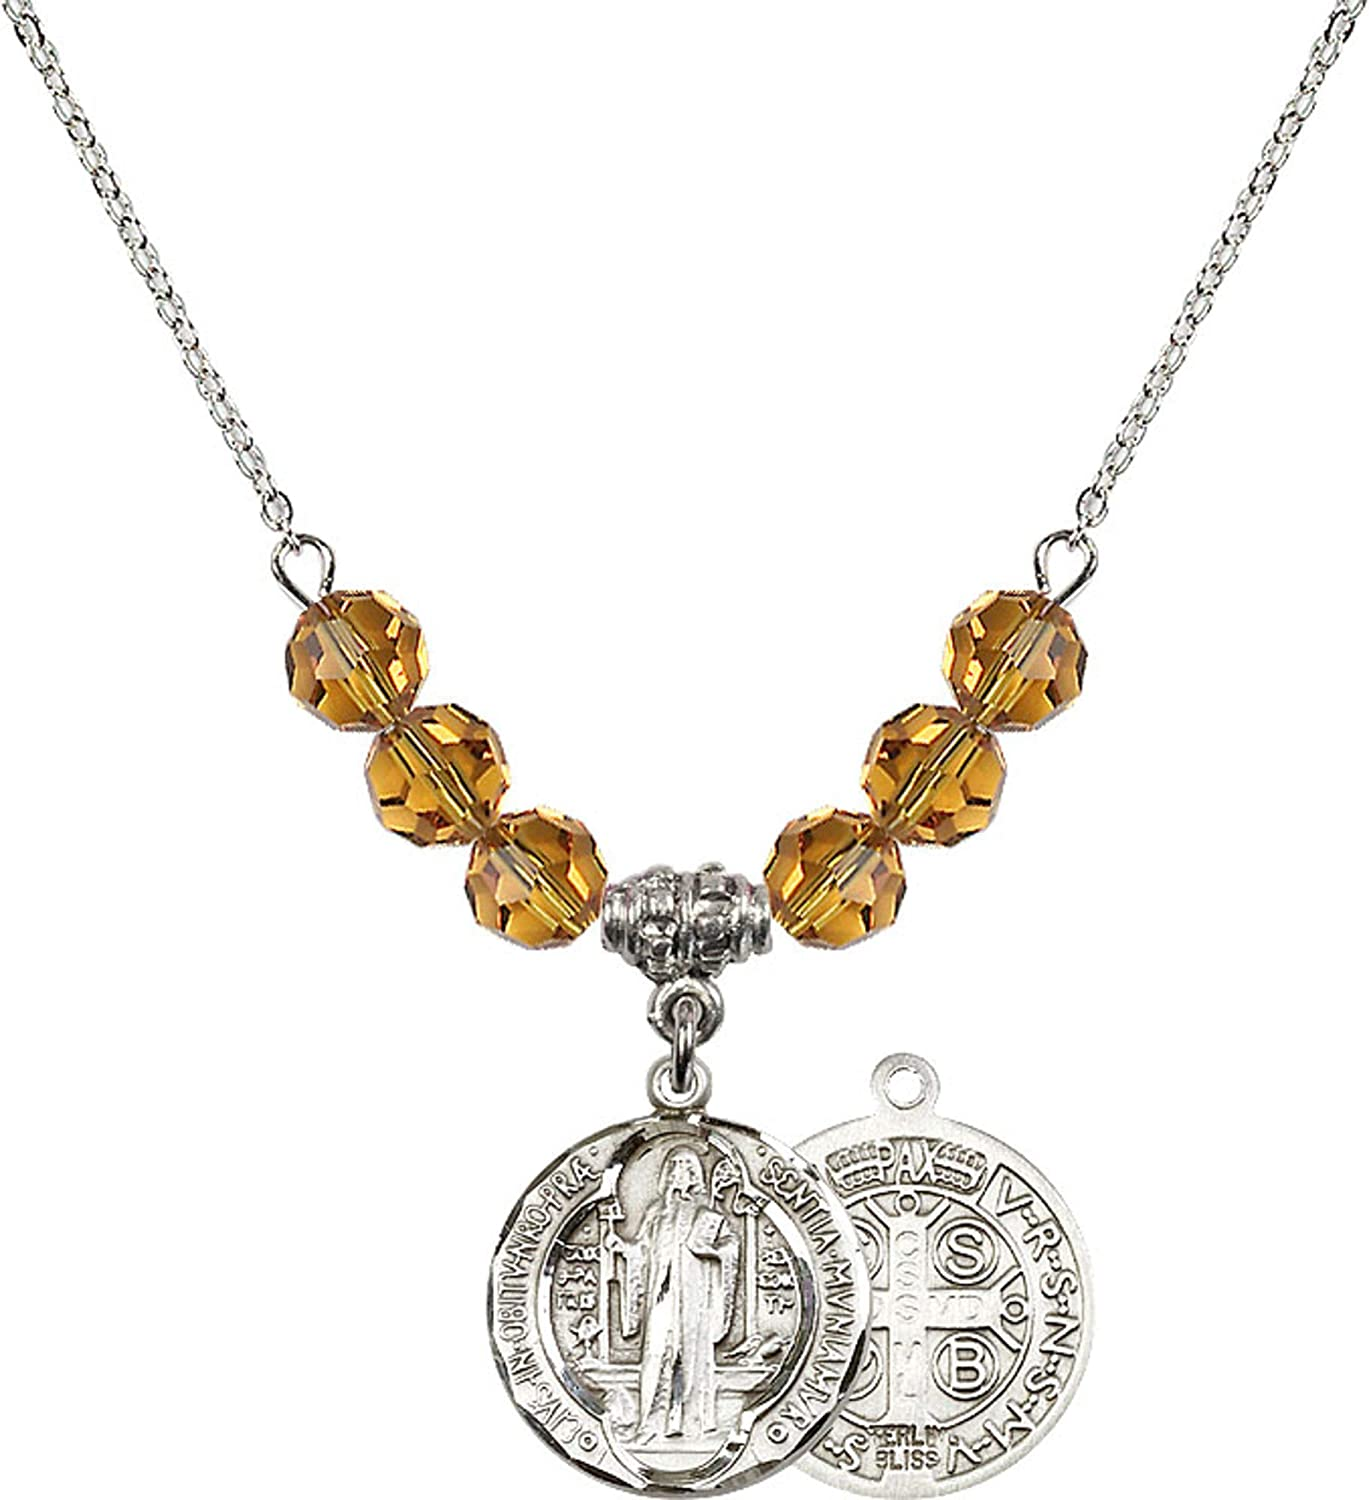 Bonyak Jewelry 18 Inch Rhodium Plated Necklace w// 6mm Yellow November Birth Month Stone Beads and Saint Benedict Charm